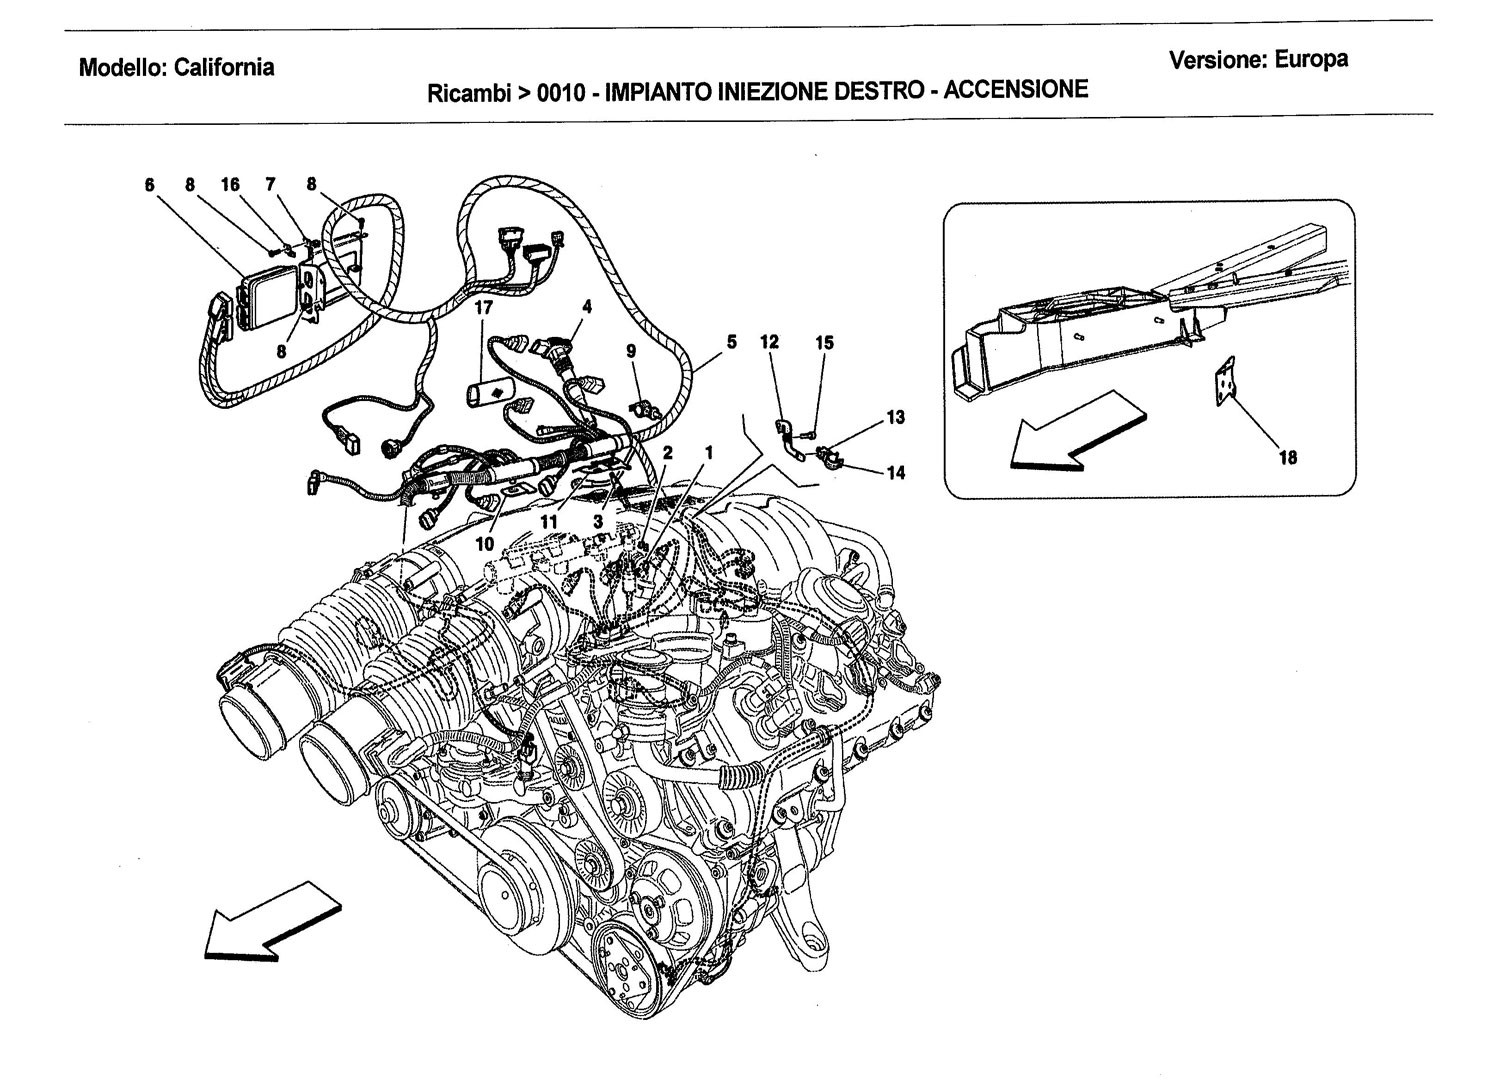 RIGHT HAND INJECTION SYSTEM - IGNITION